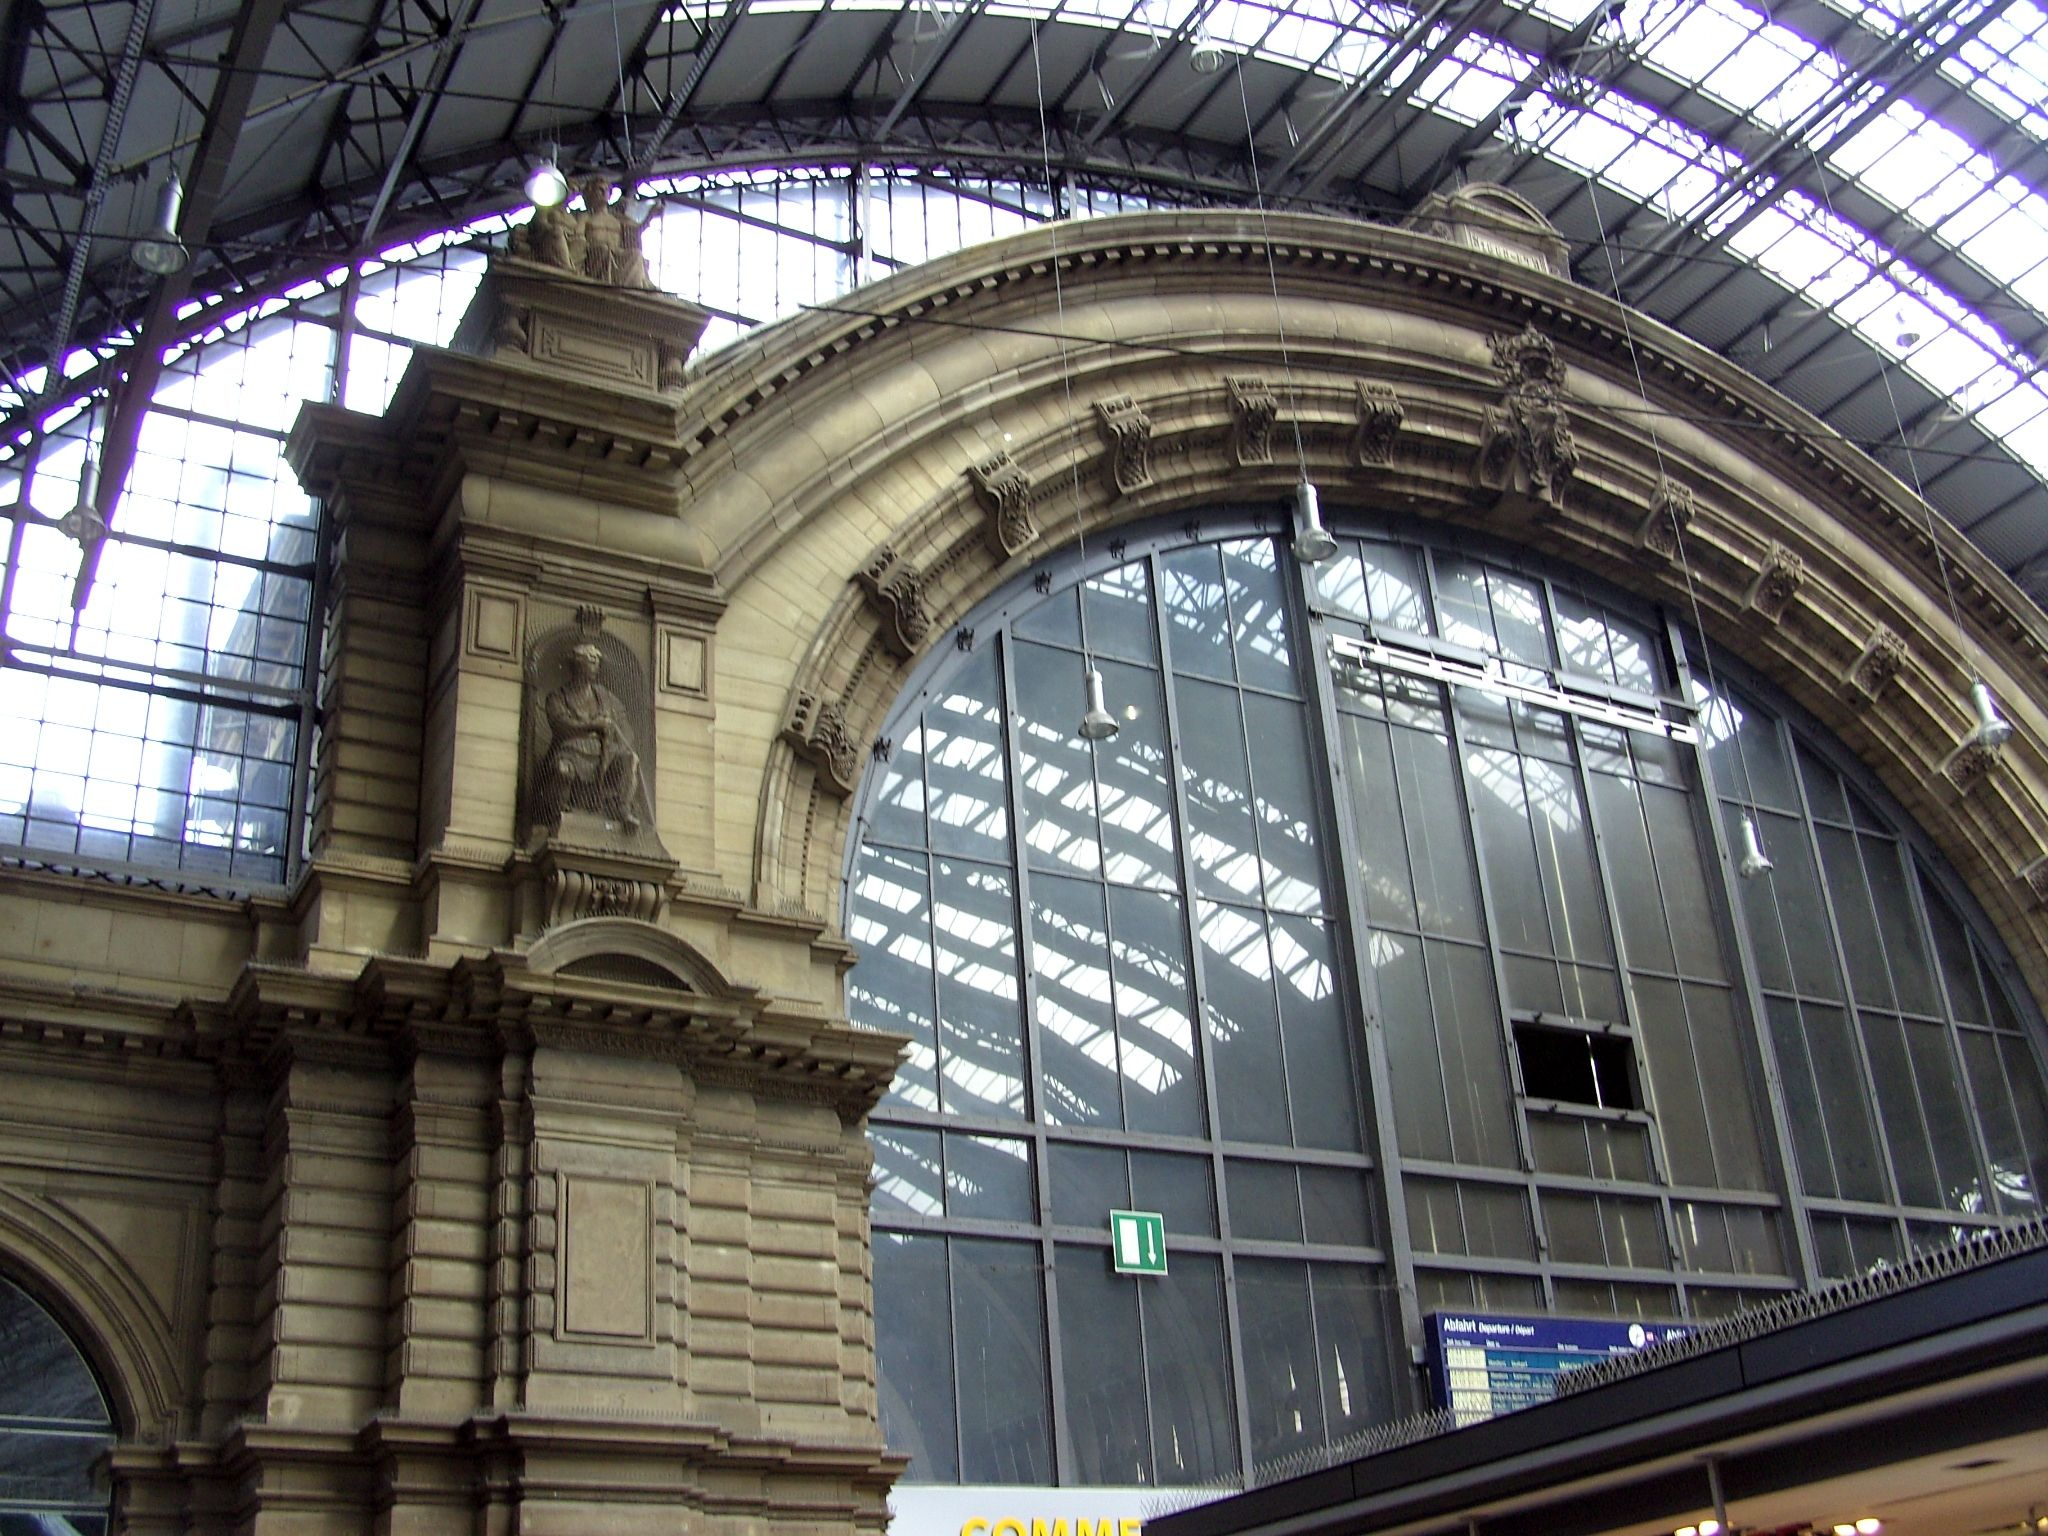 frankfurt train station interior out of country. Black Bedroom Furniture Sets. Home Design Ideas